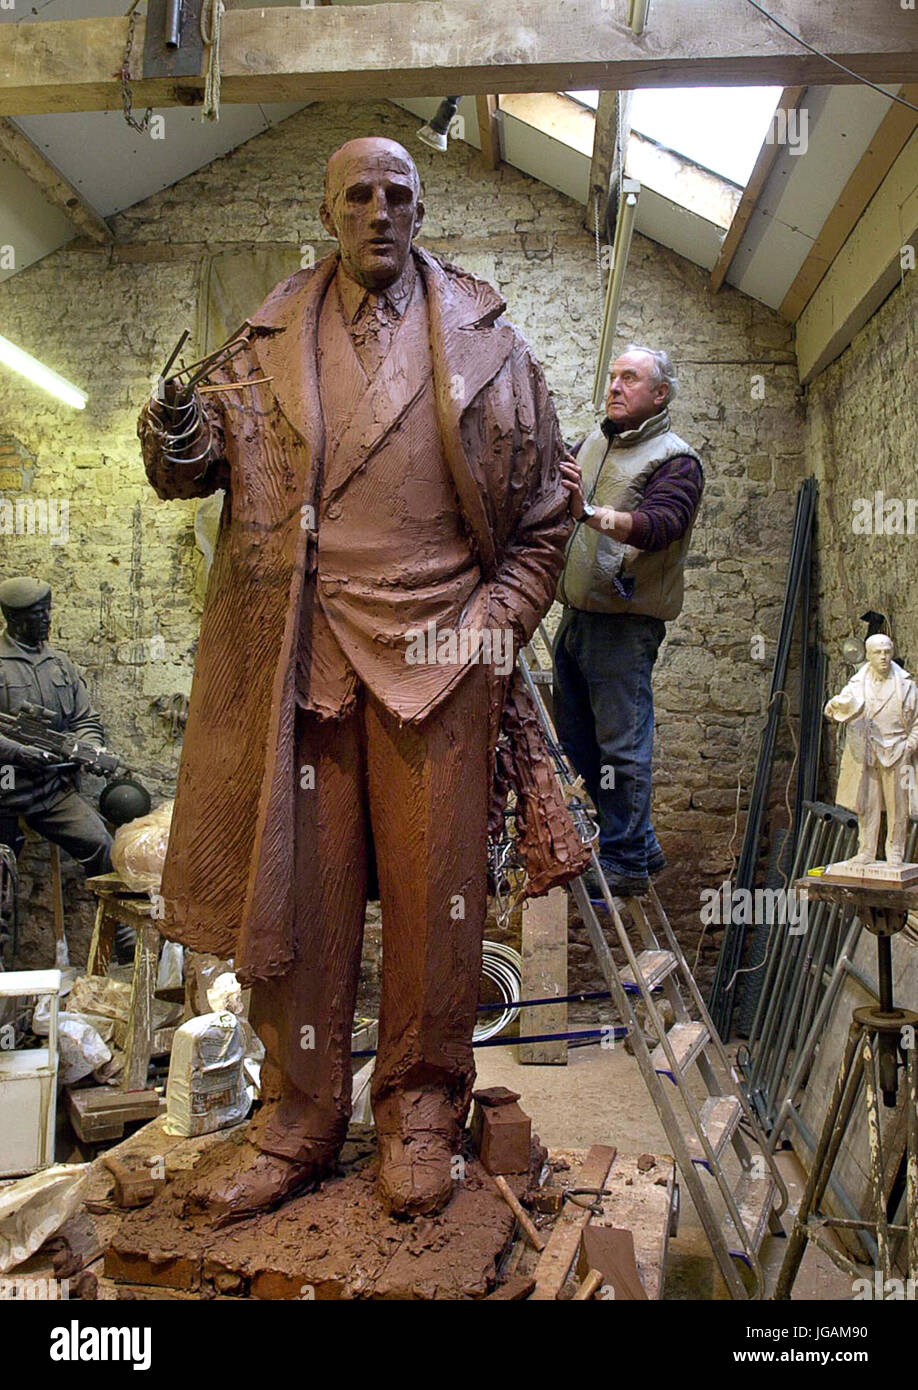 Sculptor James Butler working on the clay statue of former Wolves manager and player Stan Cullis. - Stock Image